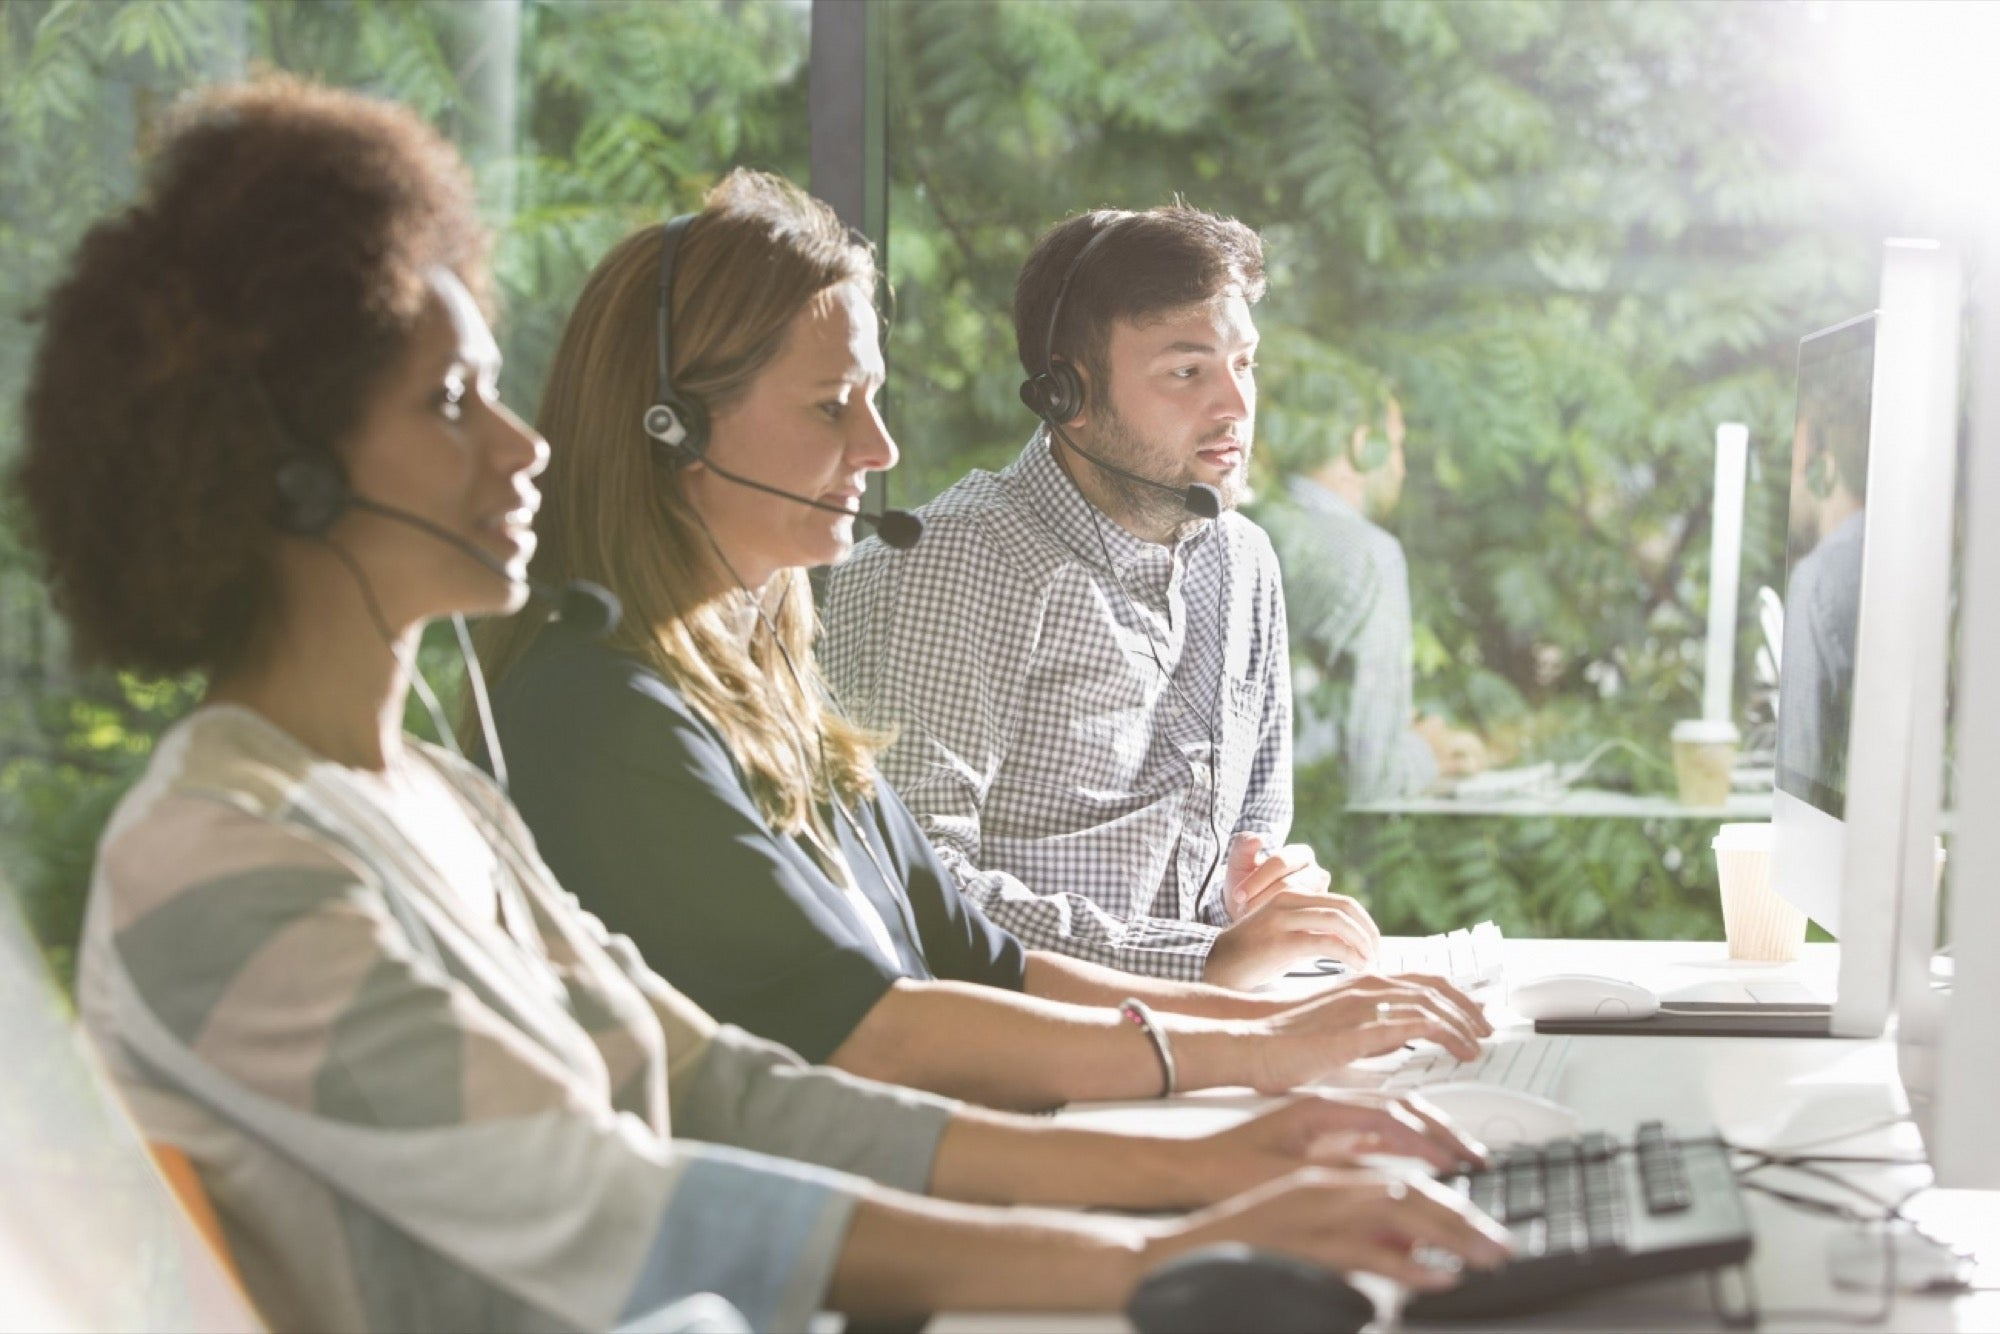 The 4 Top Customer Service Screw-Ups You Must Avoid